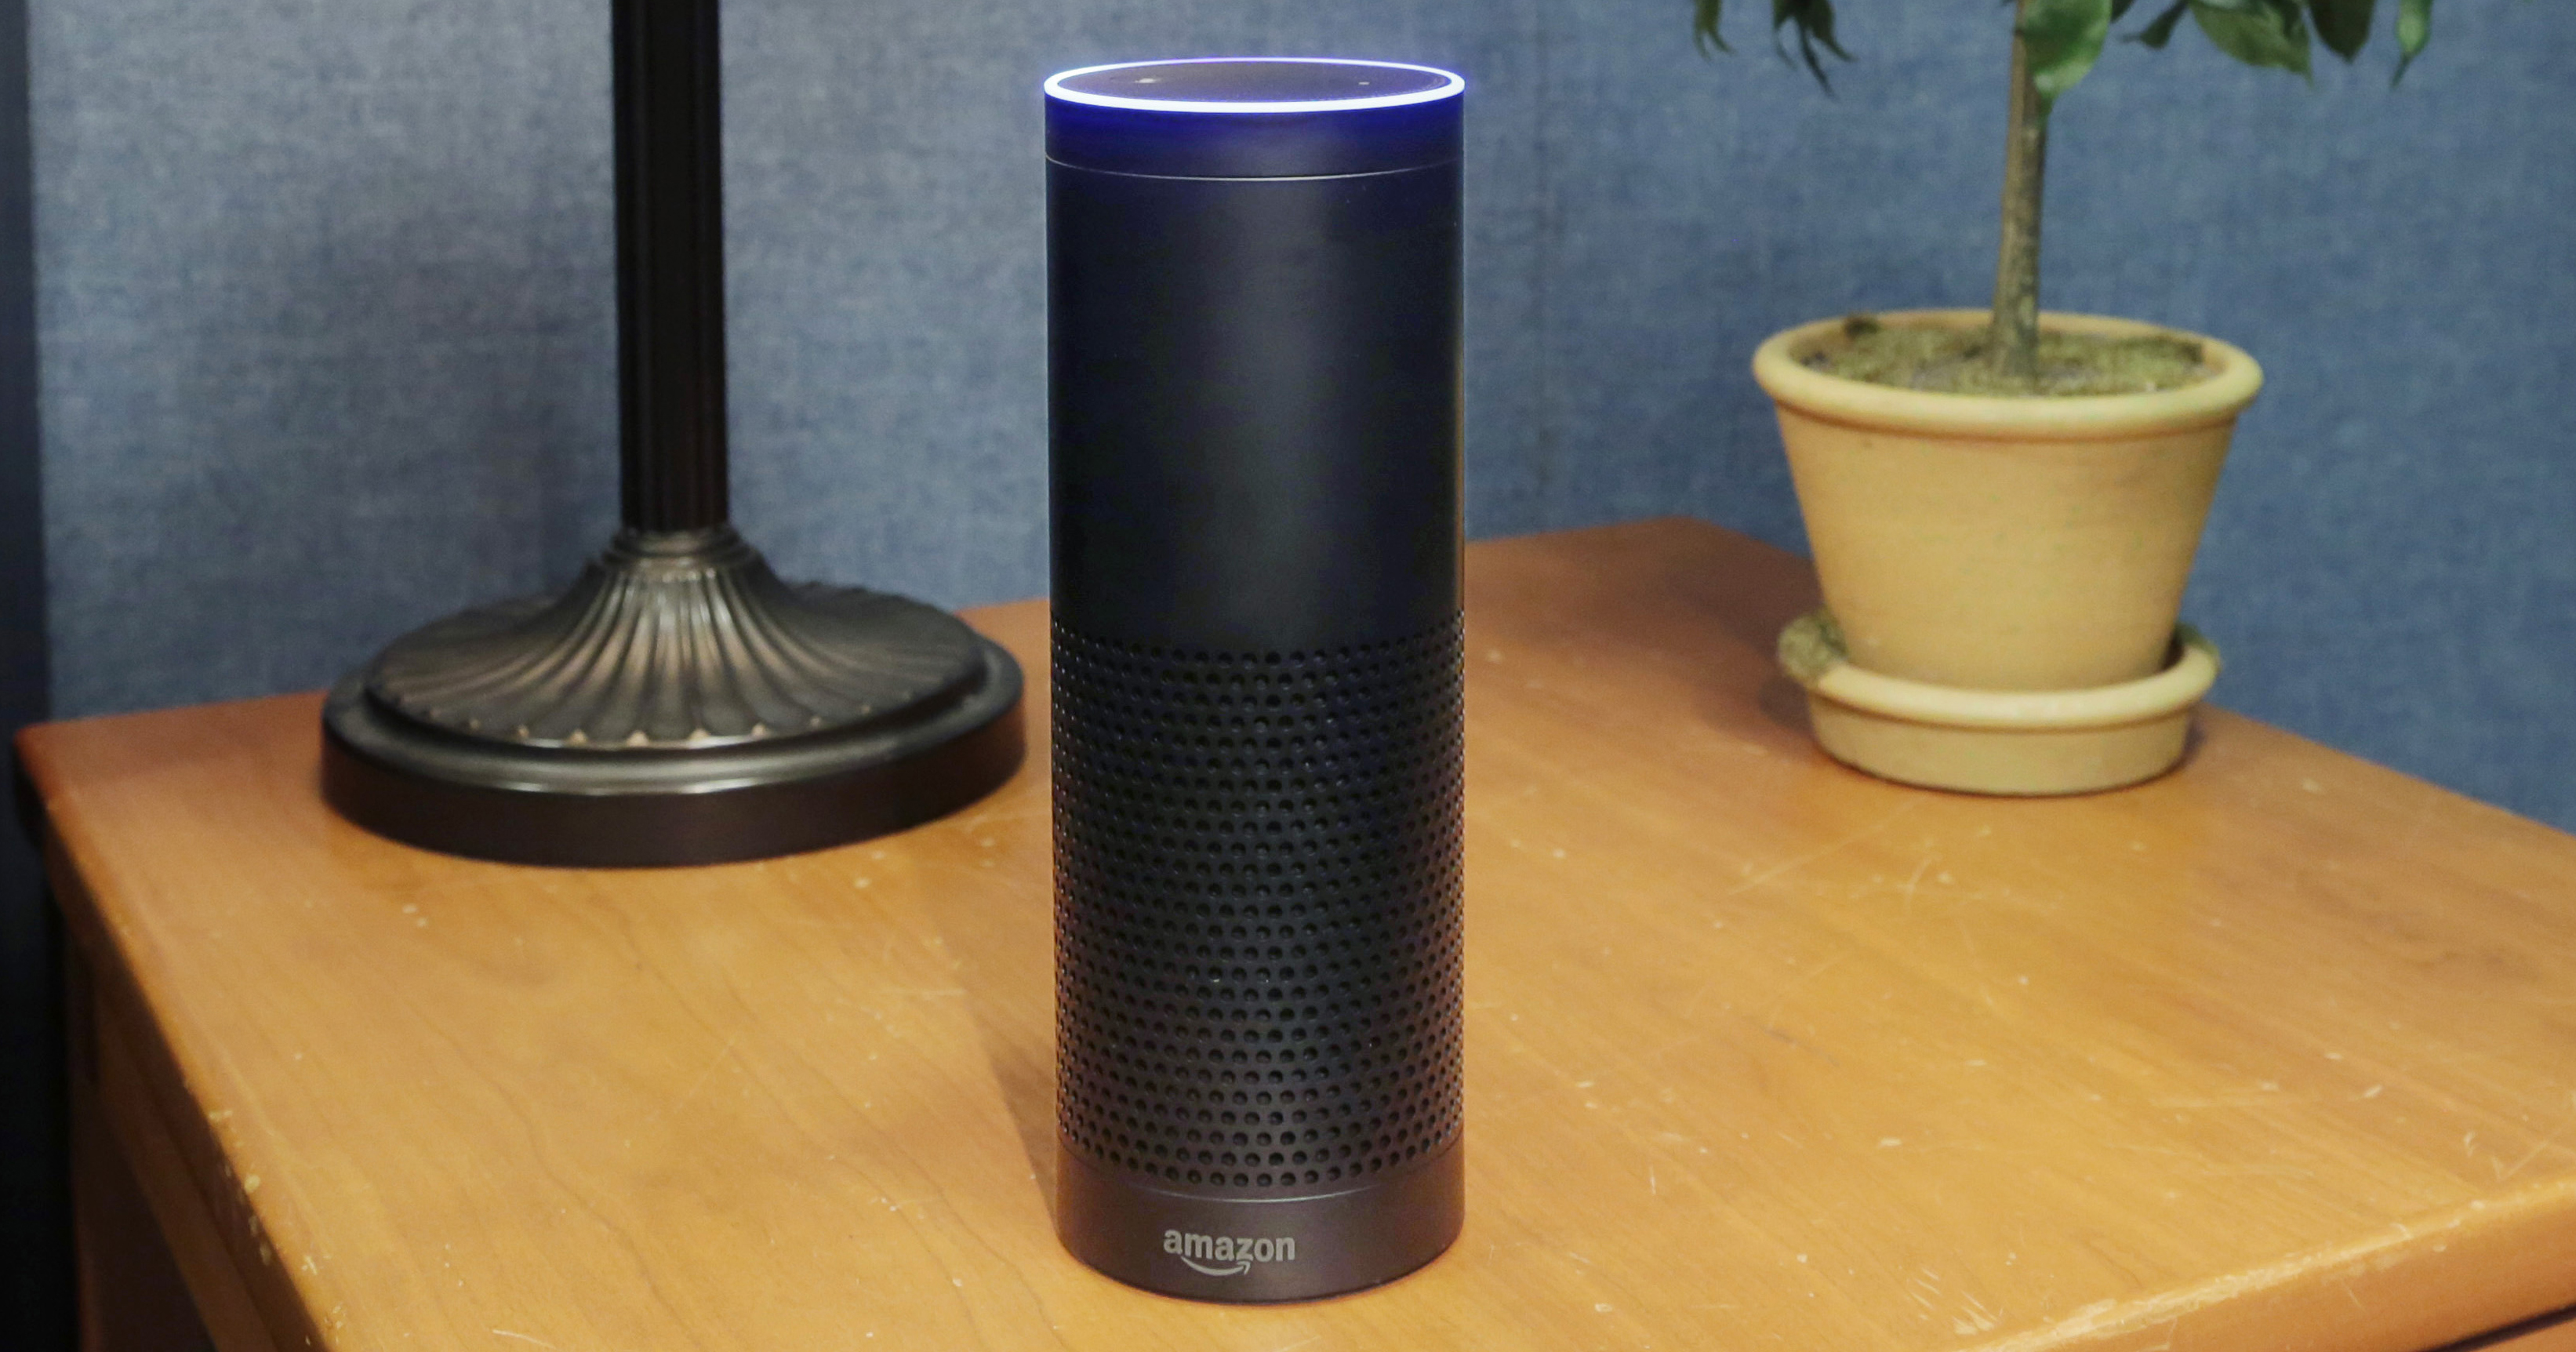 Amazon's Echo is seen on July 29, 2015 in New York City.